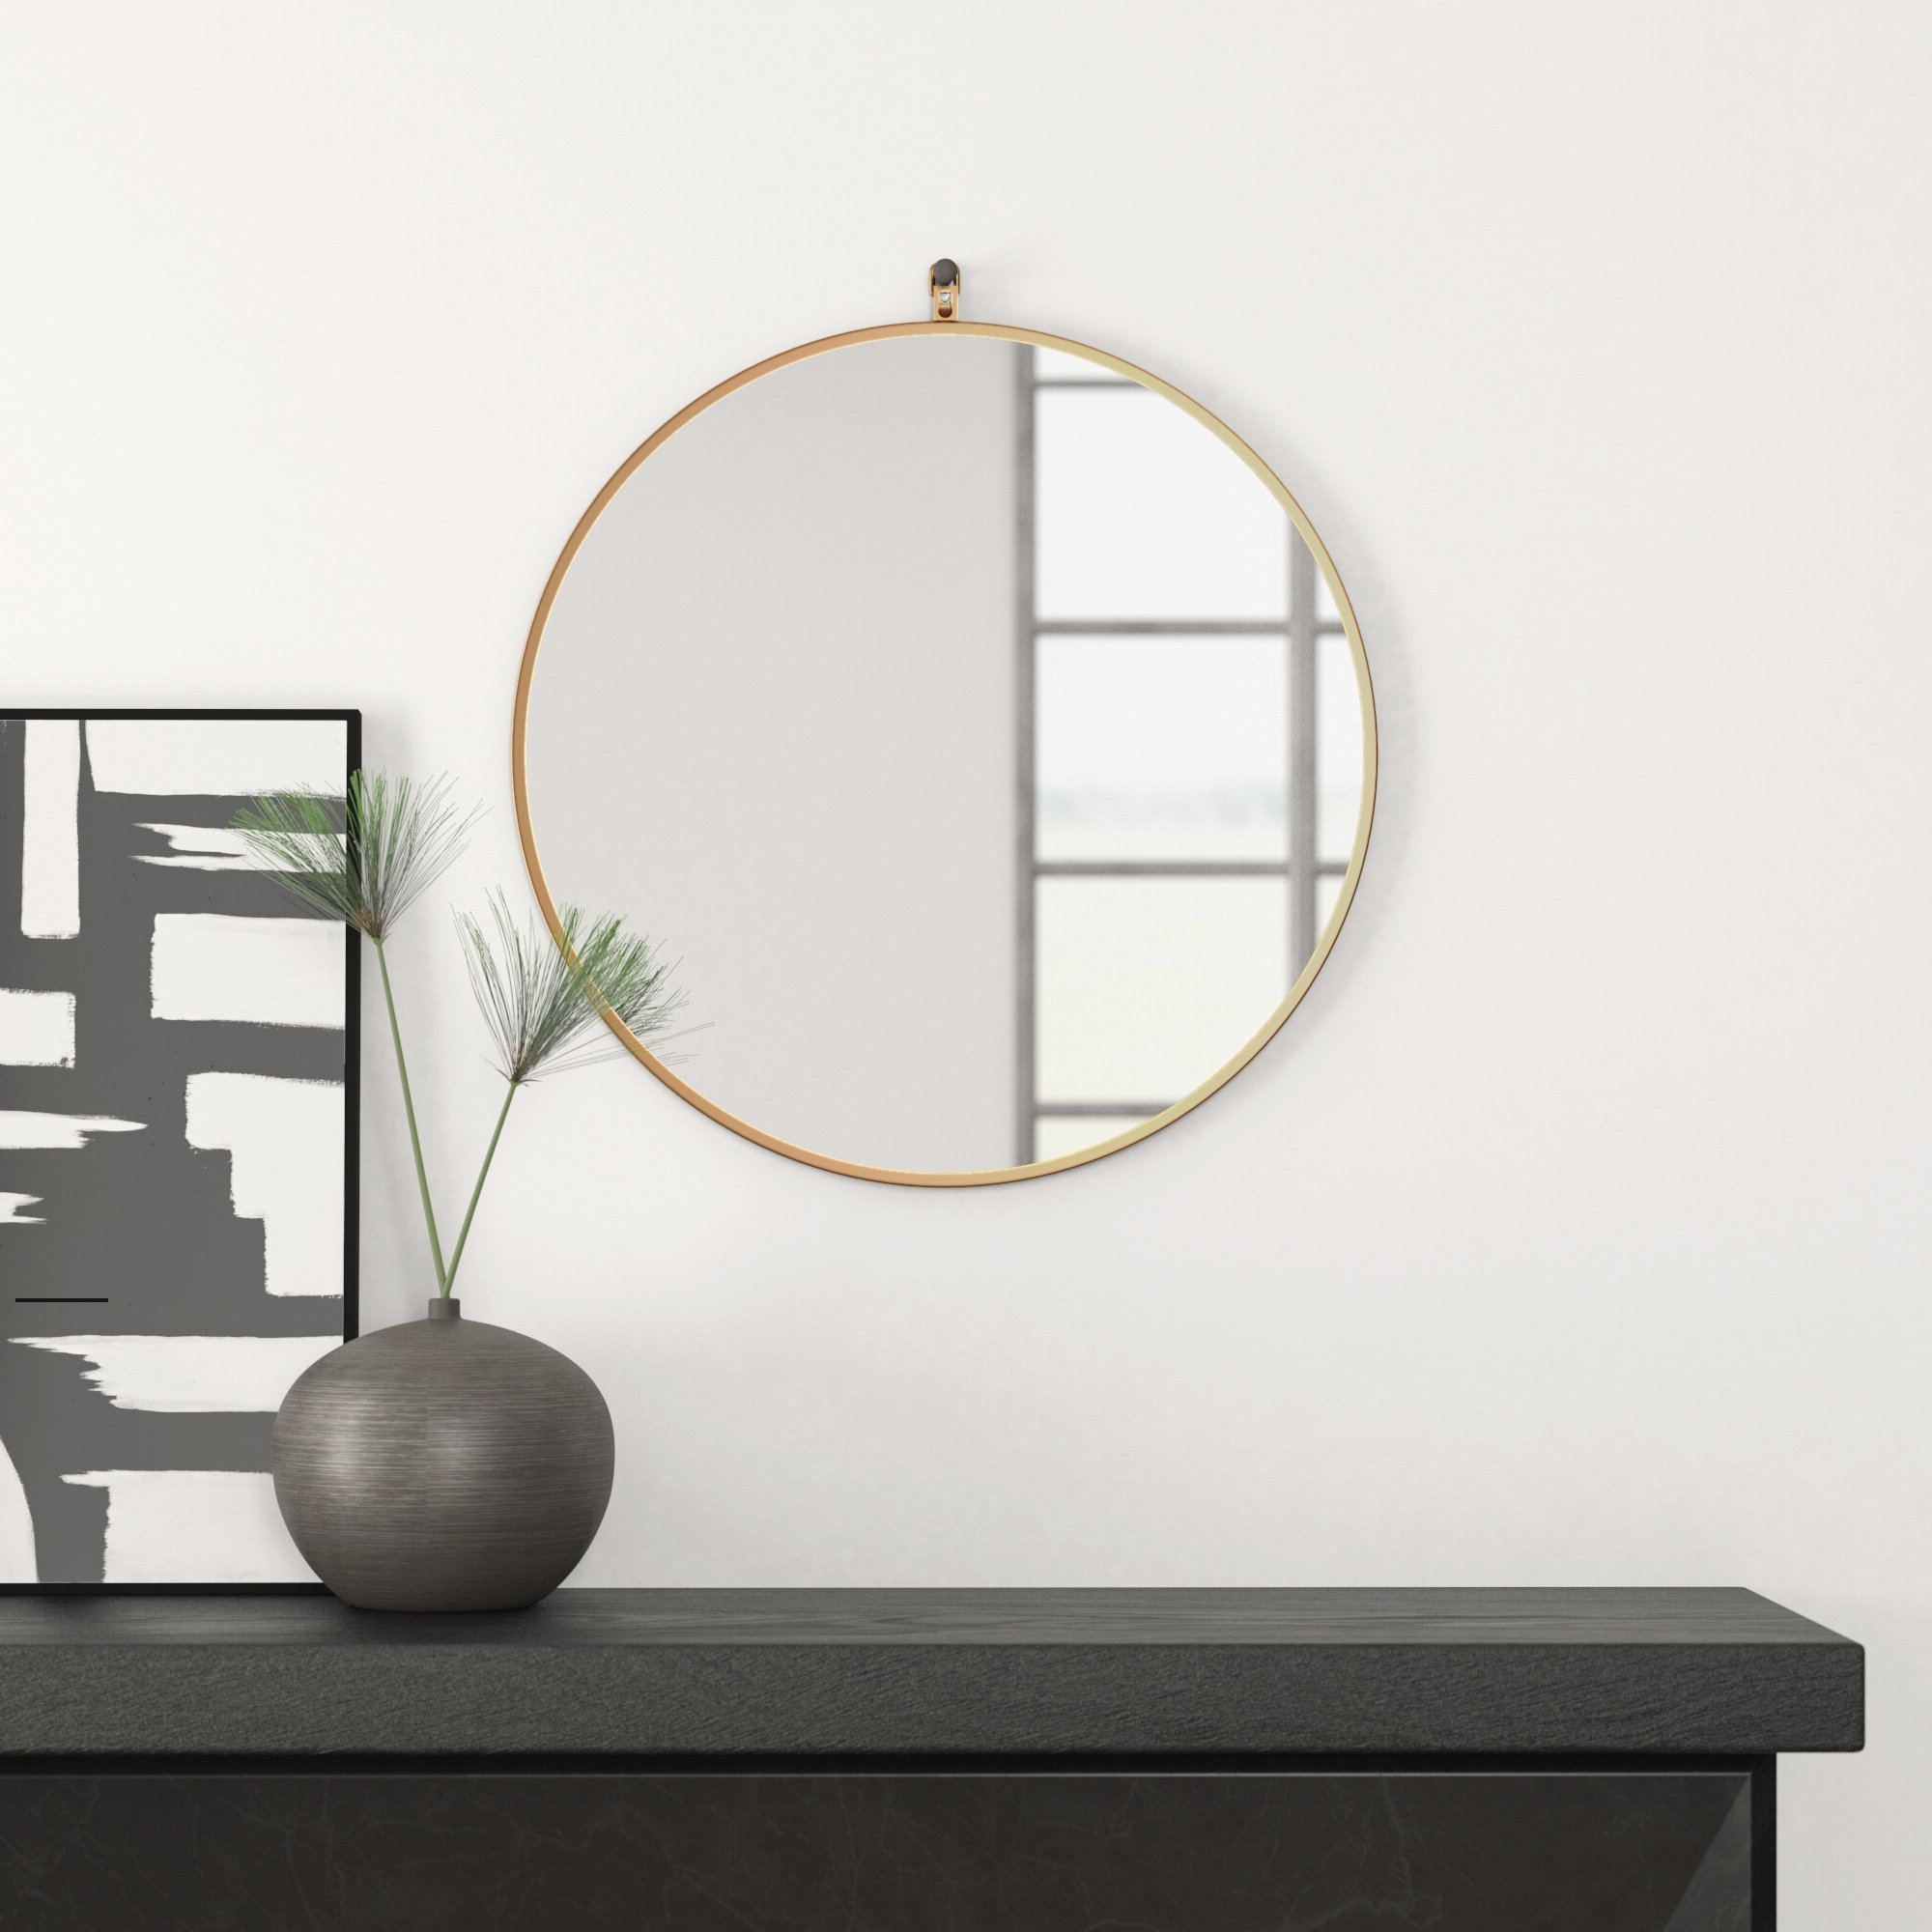 Yedinak Modern Distressed Accent Mirrors Pertaining To Preferred Yedinak Modern Distressed Accent Mirror (Gallery 1 of 20)